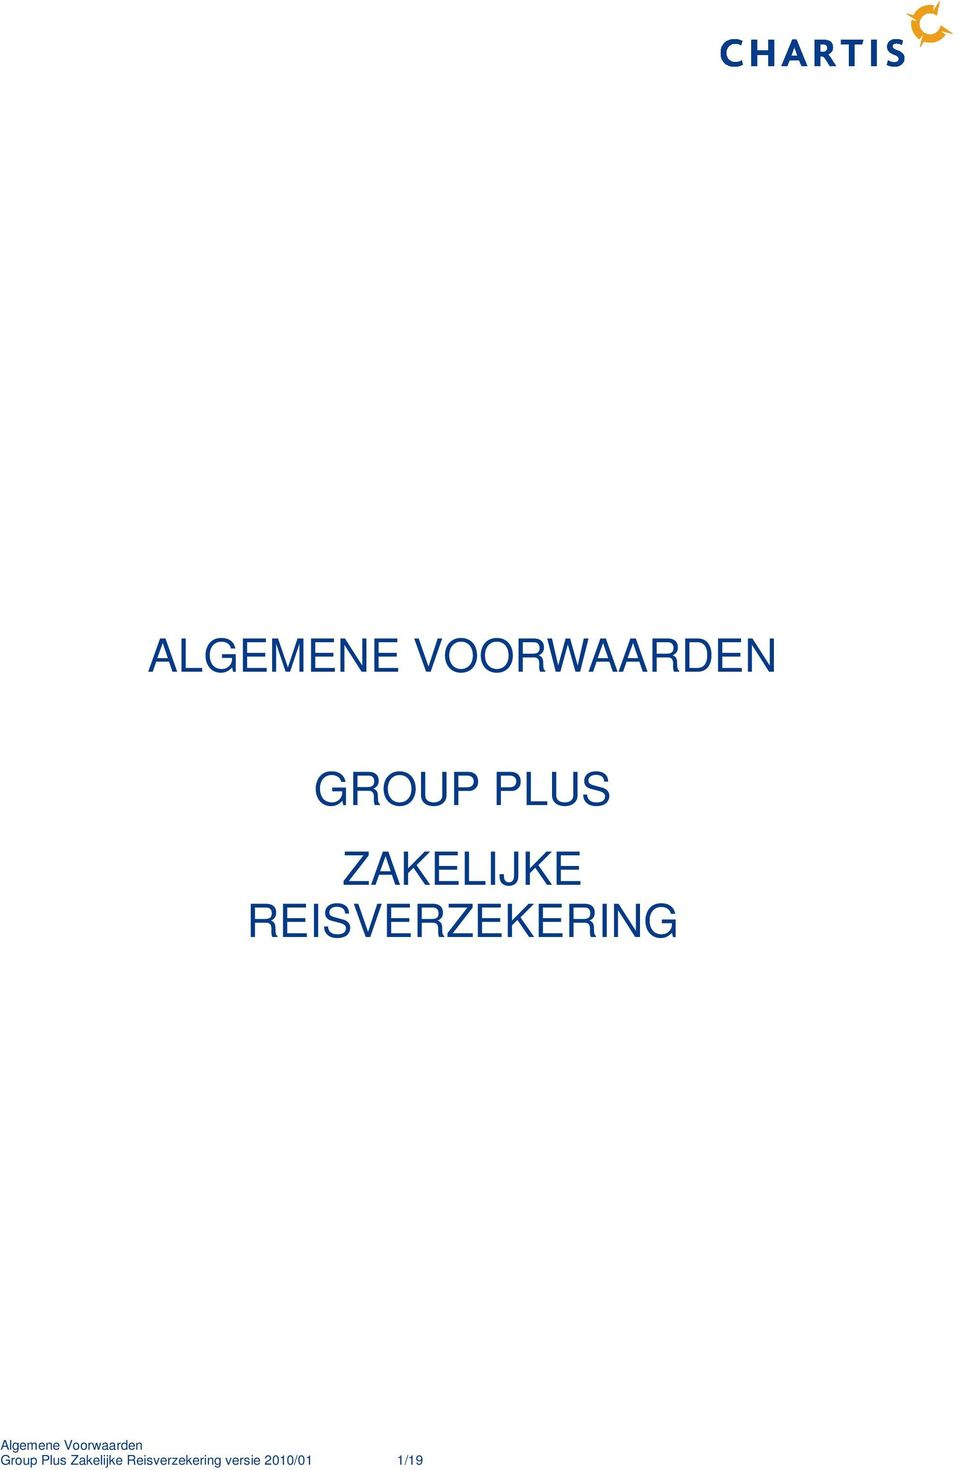 REISVERZEKERING Group Plus